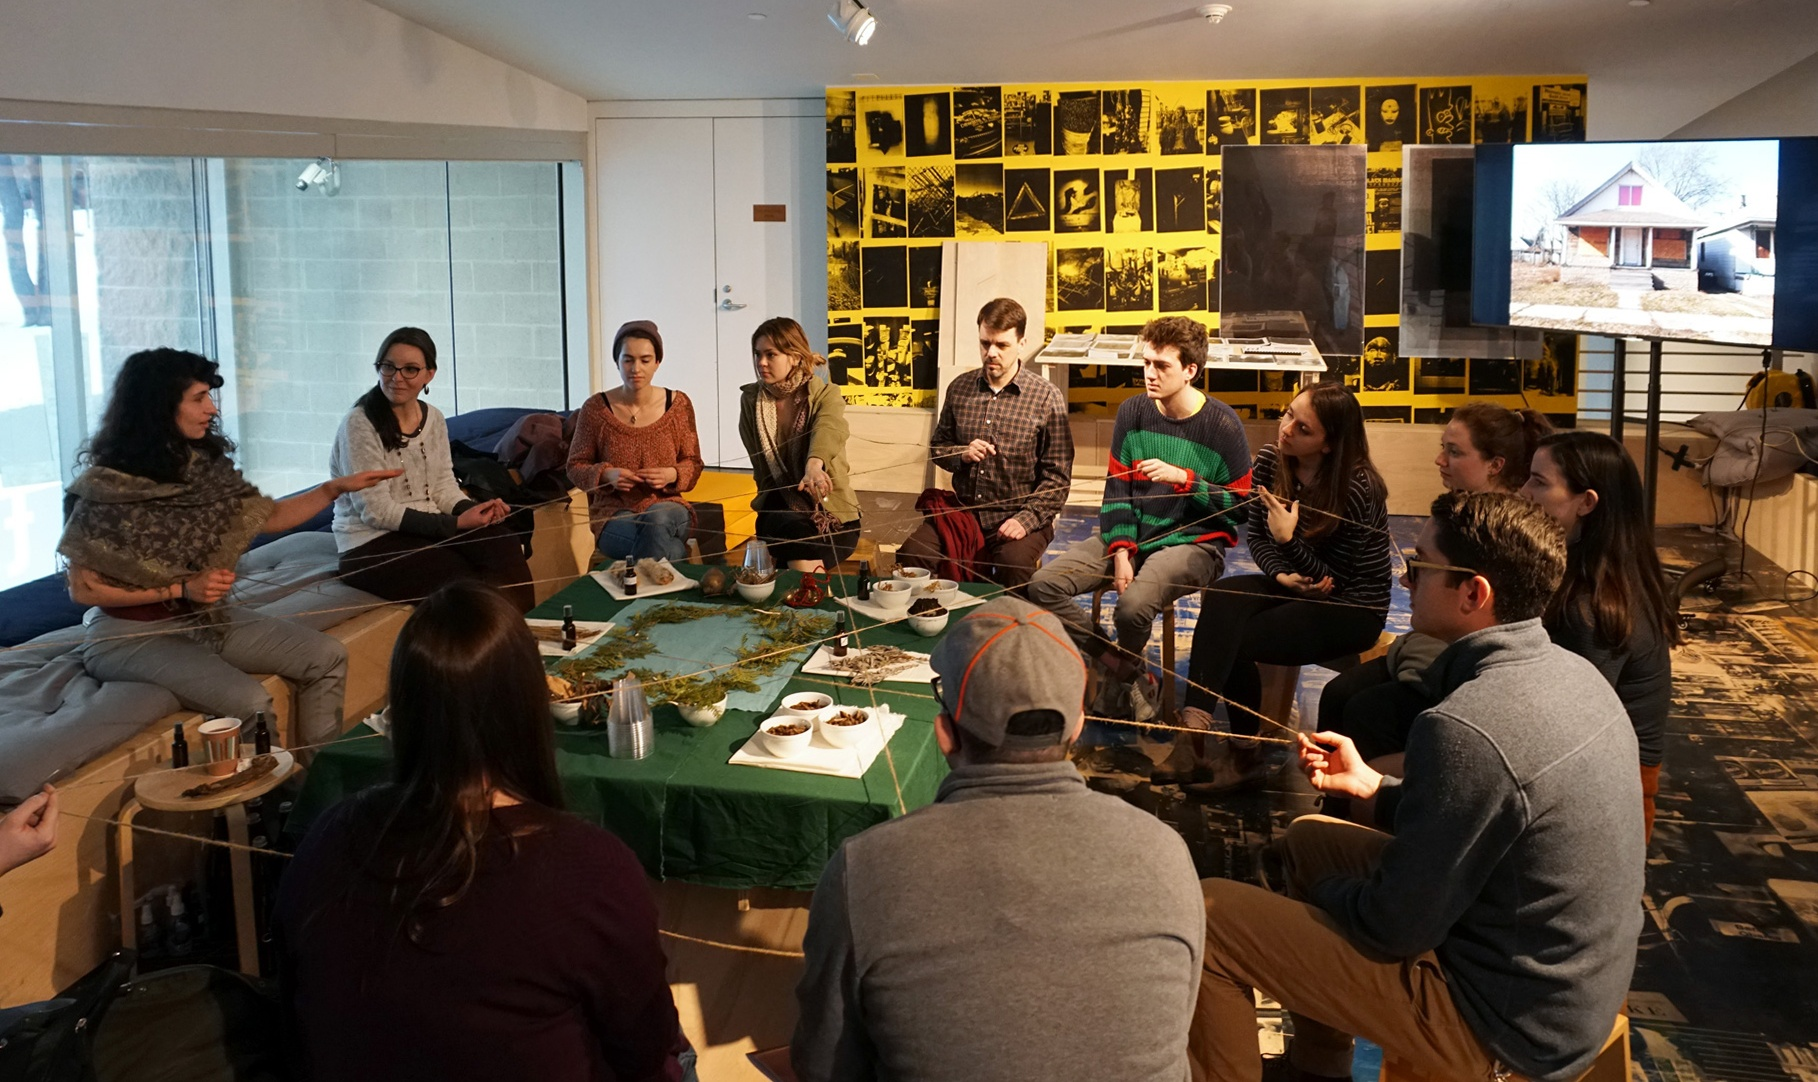 A group of people sit around a table covered with plant and earth materials holding a string that connects them all.